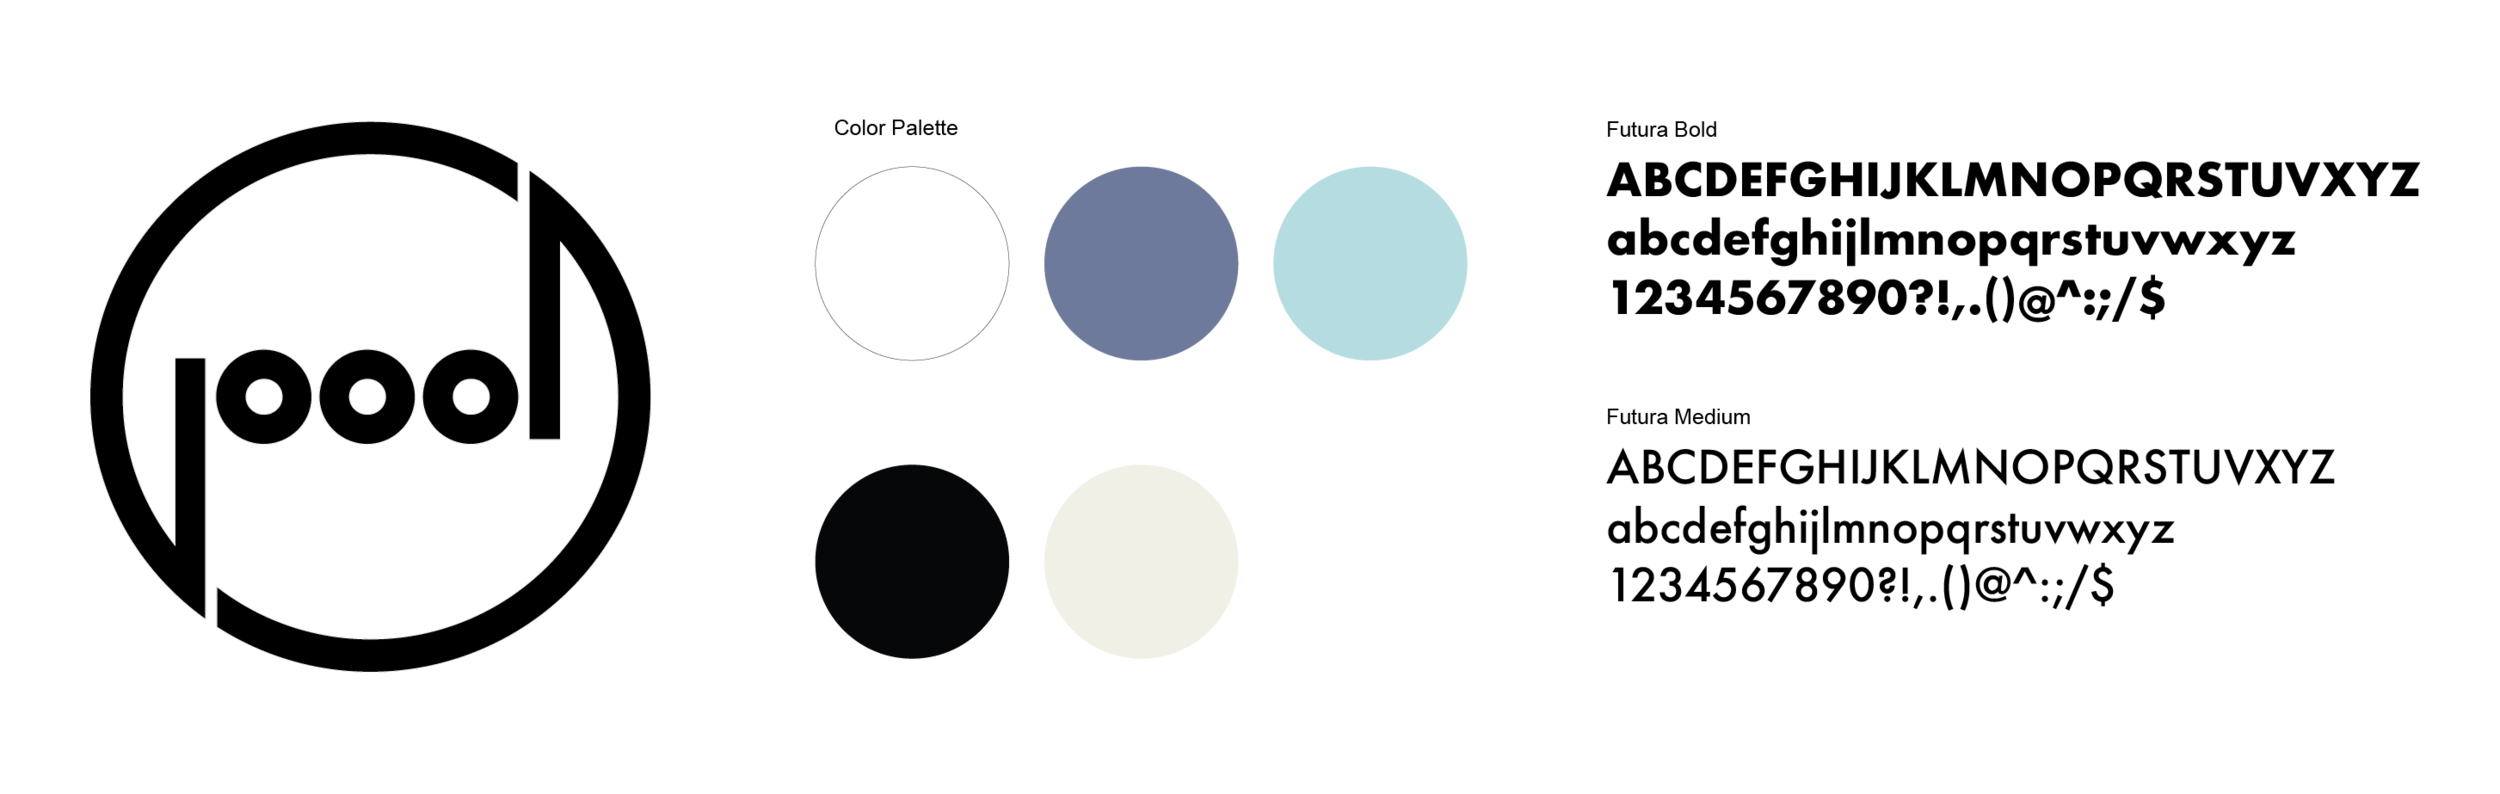 PoolColorPalette-07.png